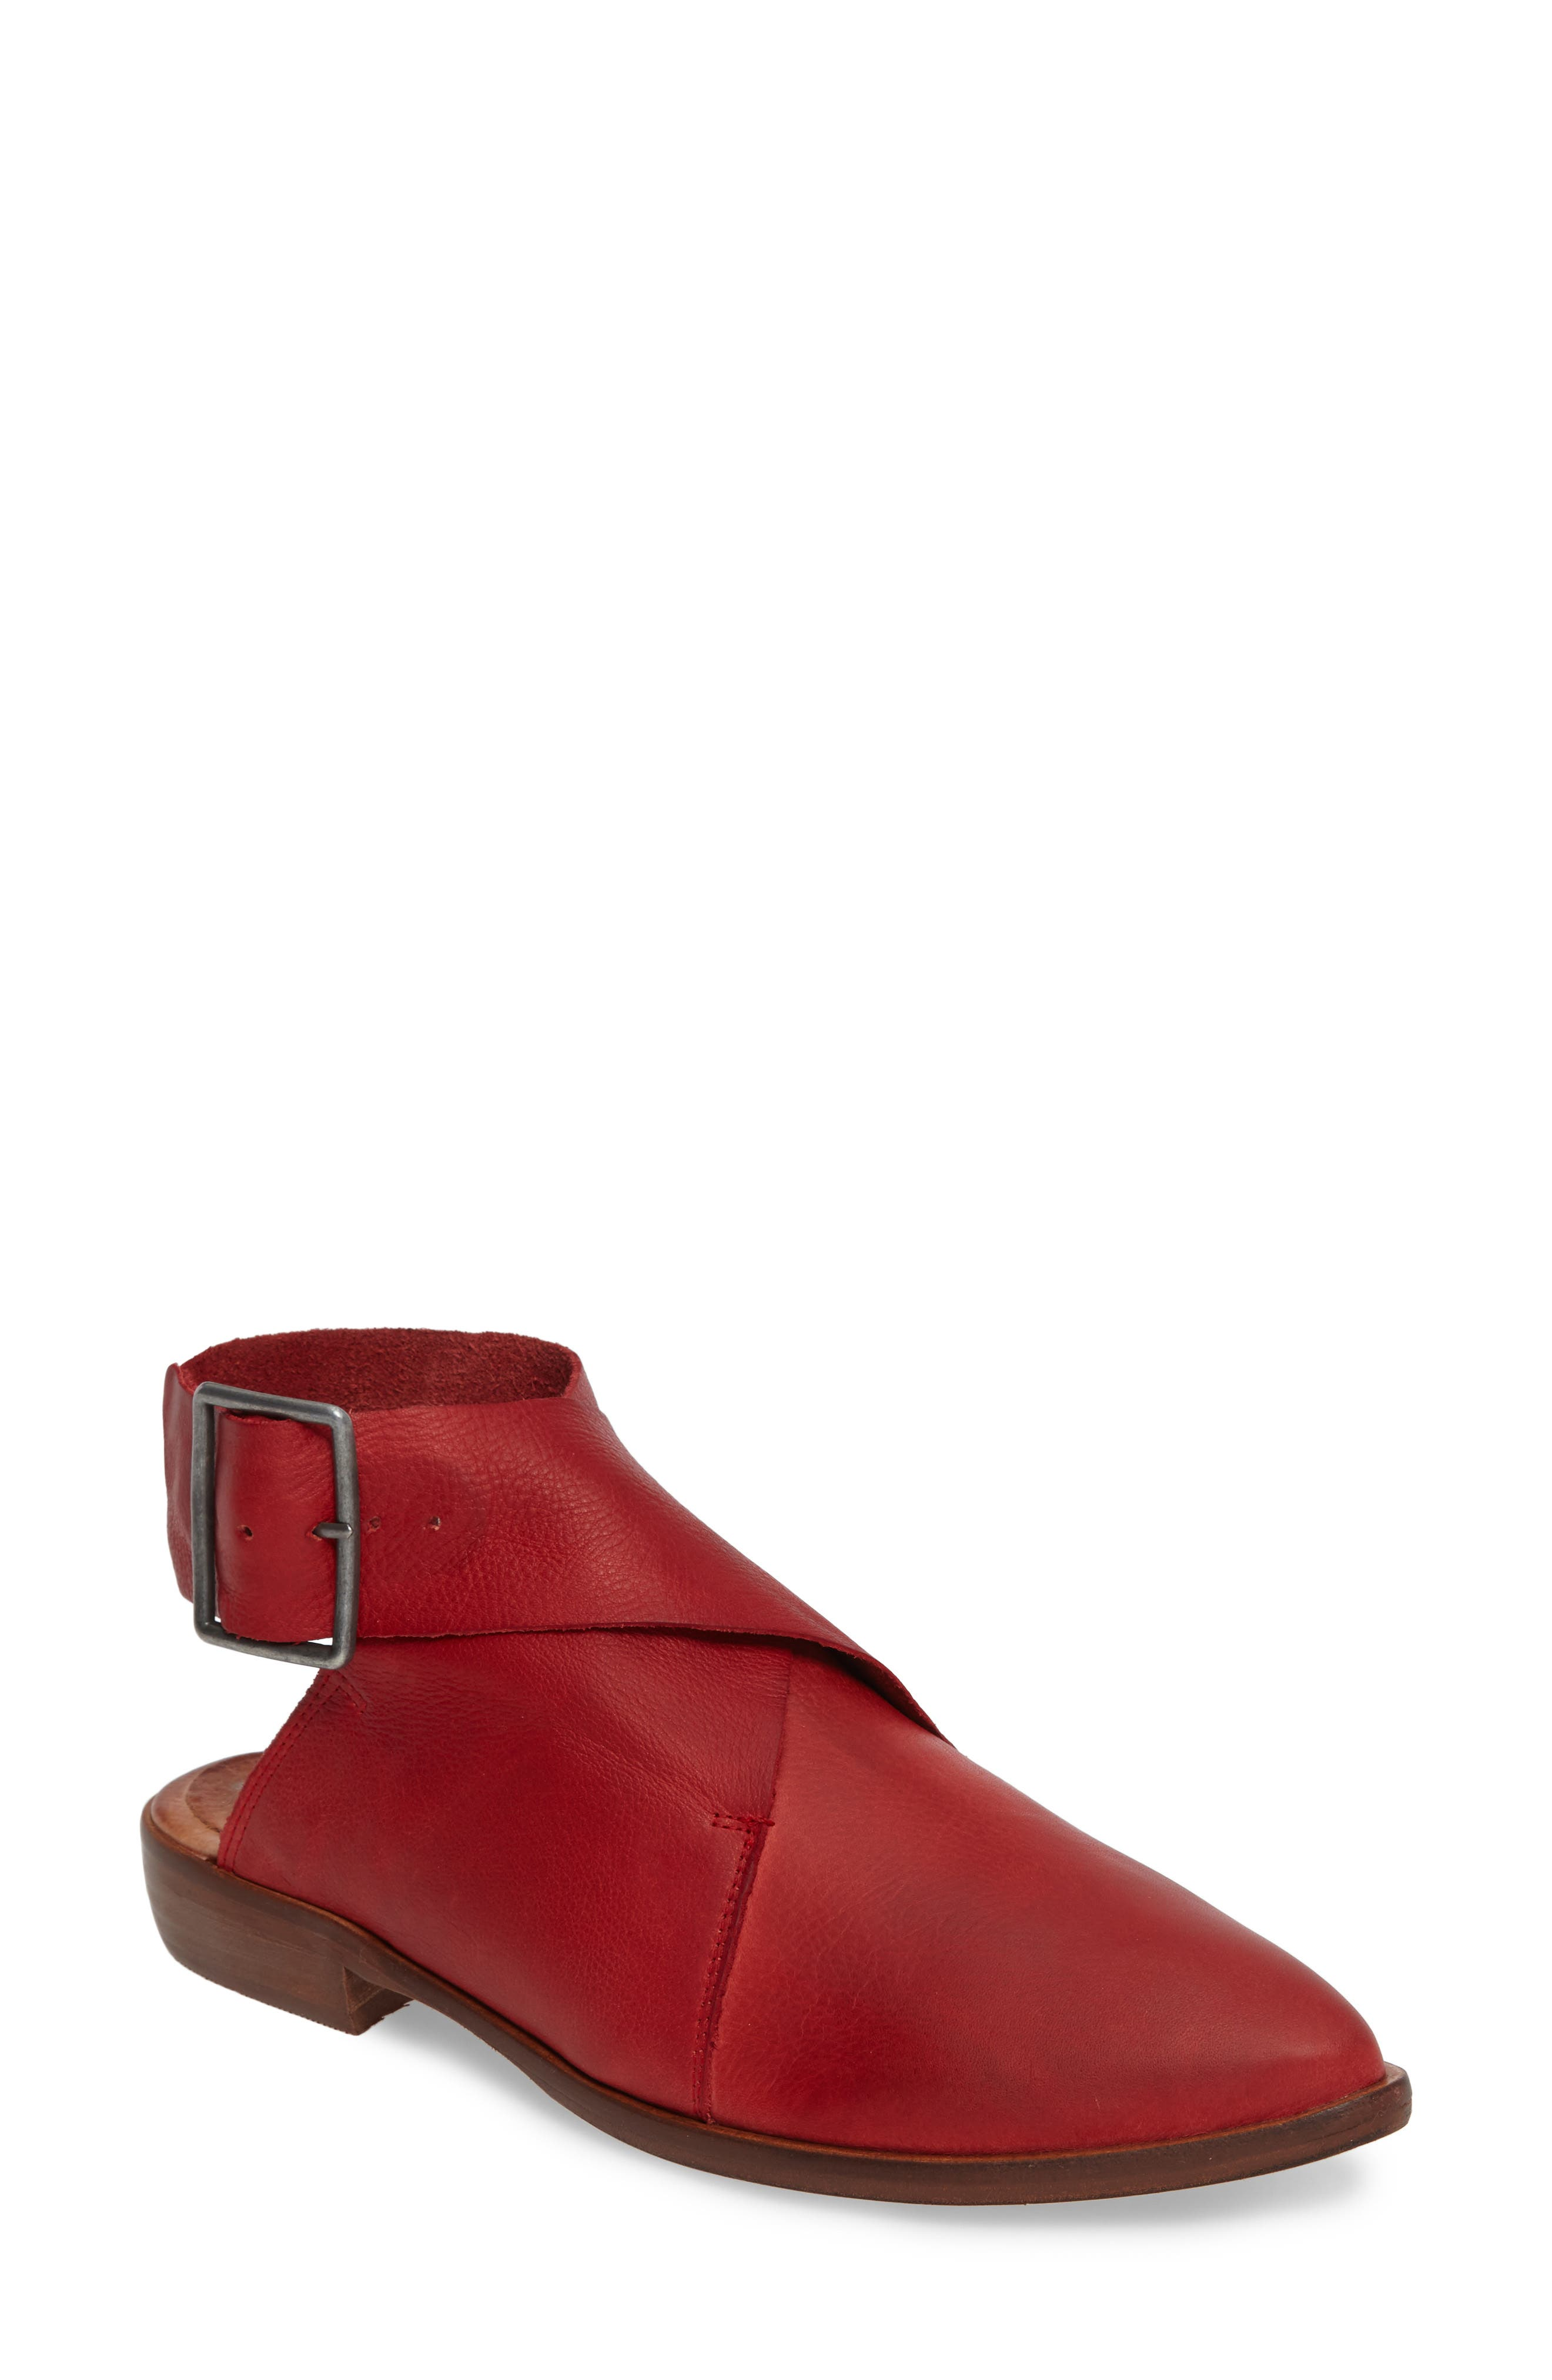 Bryce Buckle Wrap Flat,                             Main thumbnail 1, color,                             Red